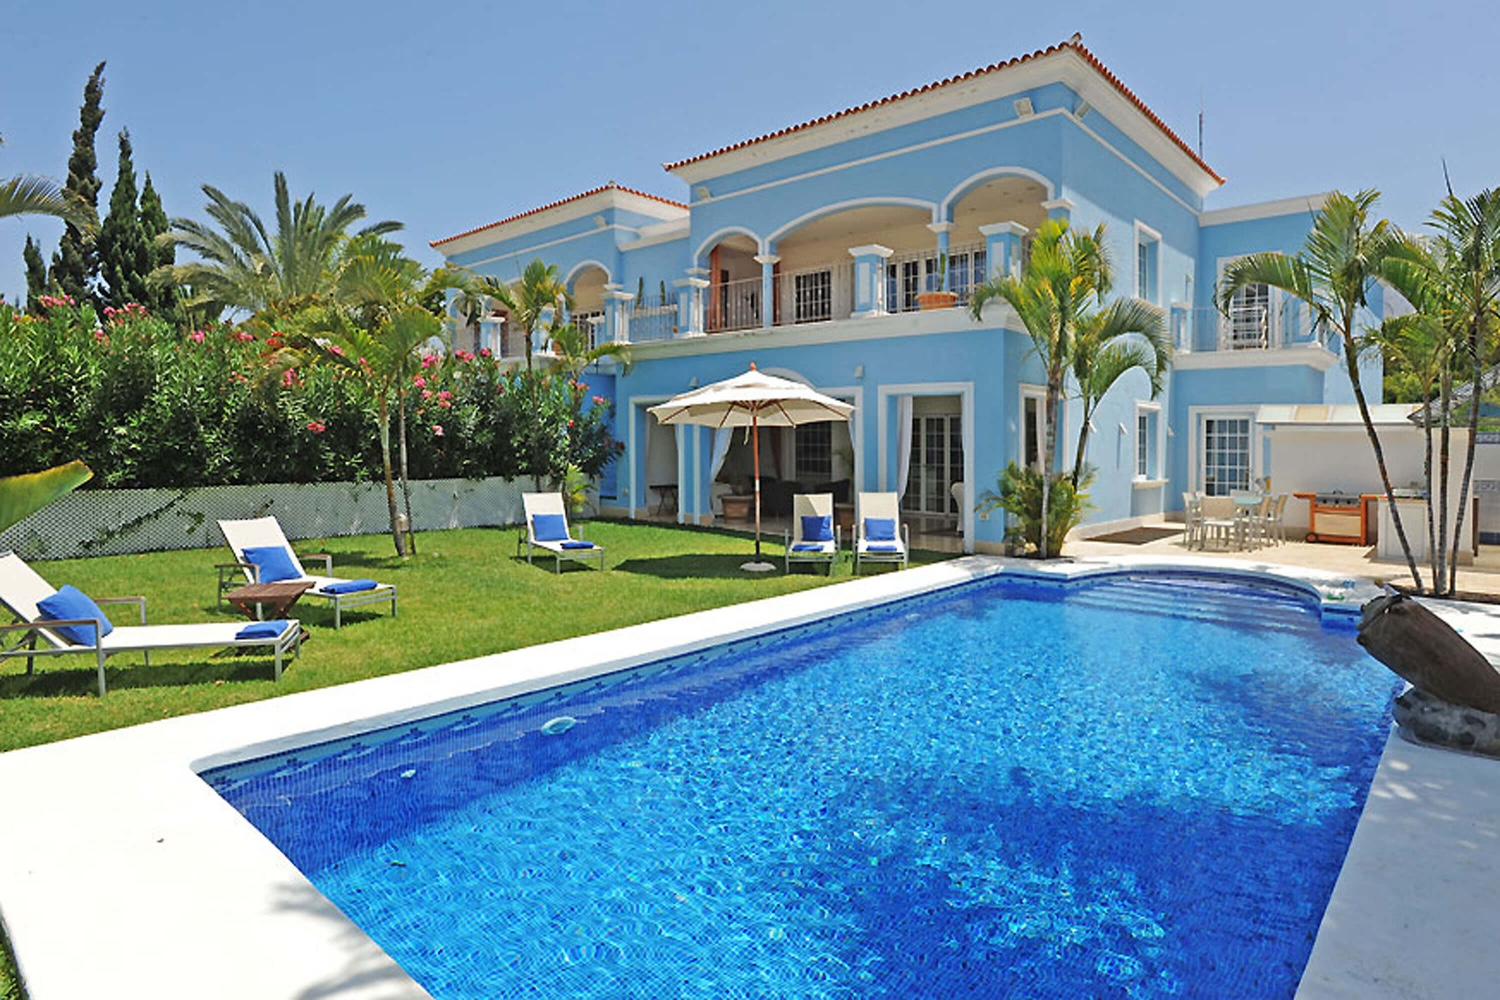 Luxury villa with a large private pool area in Costa Adeje in the south of Tenerife